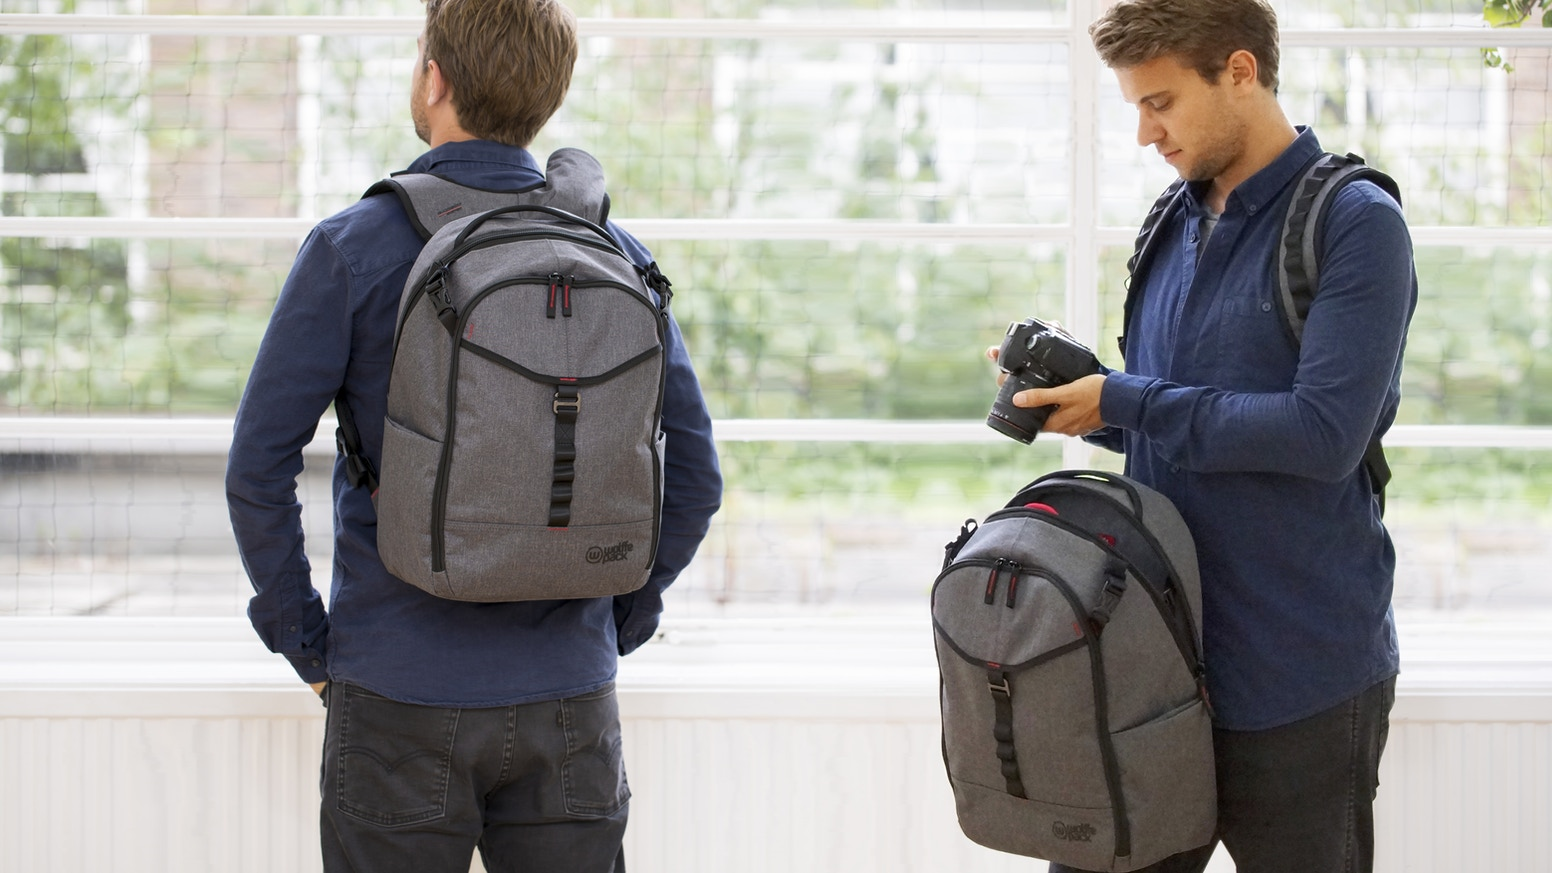 e5d55c2c174dd Wolffepack Capture is the ultimate backpack for cameras and all-round  access. Swing your